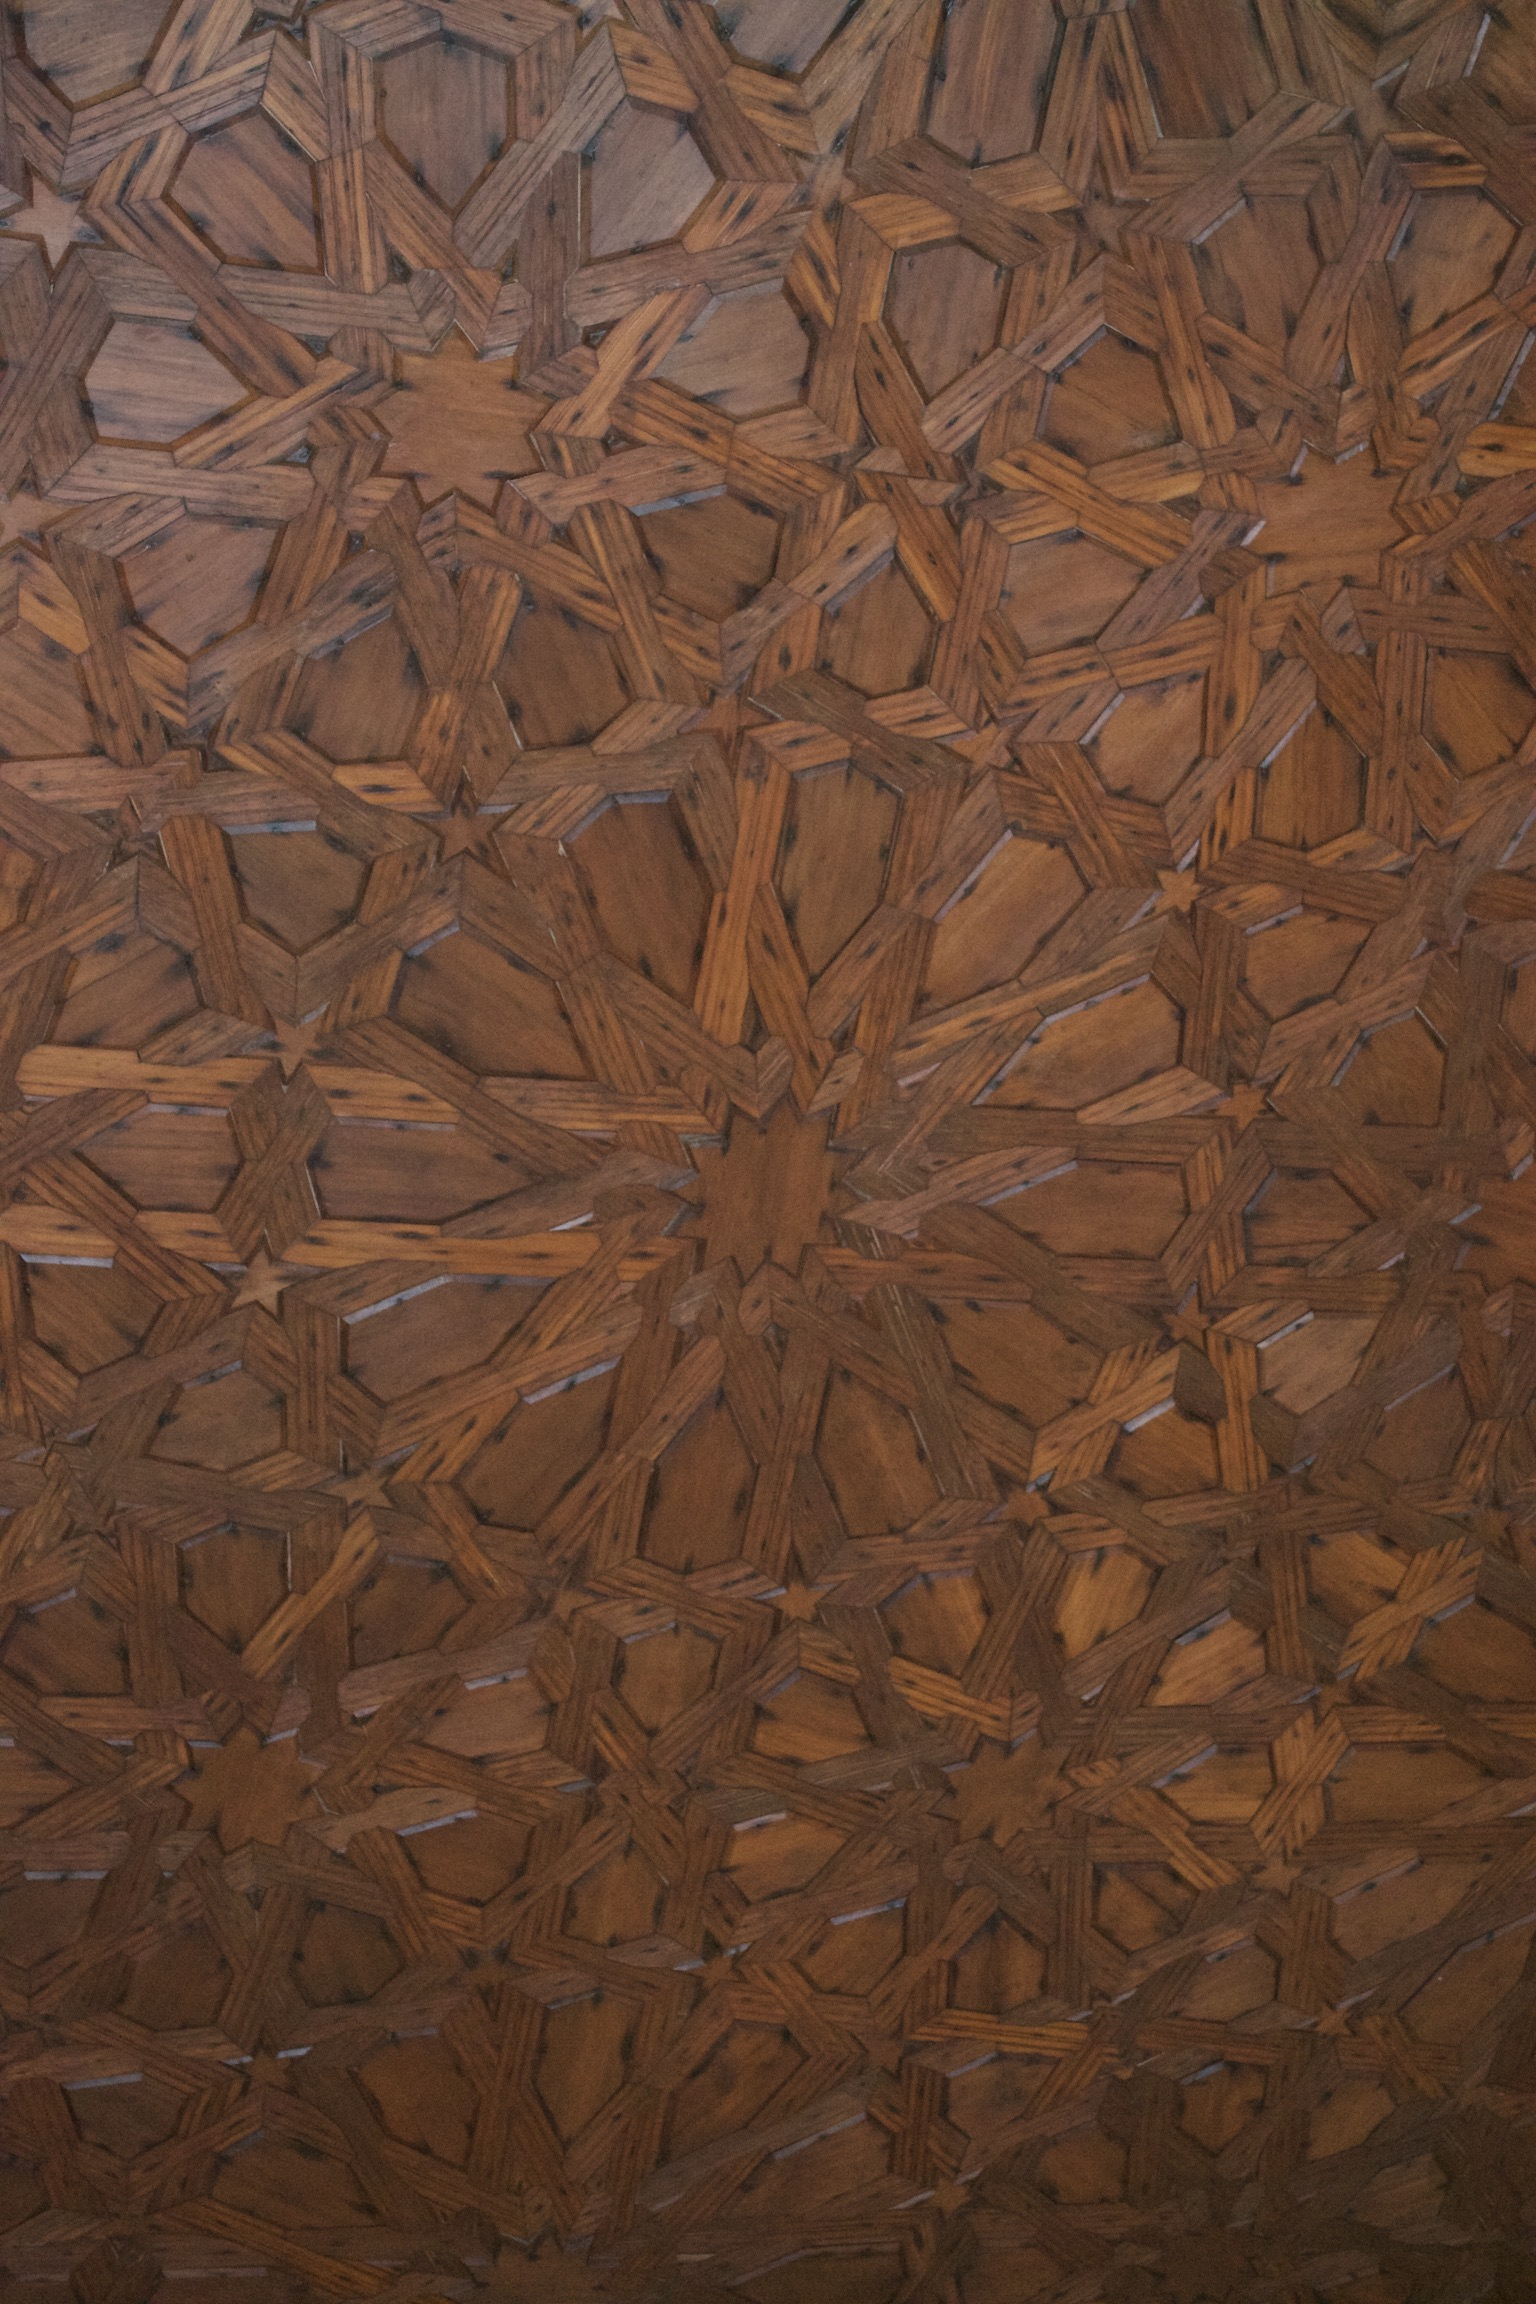 A geometric design of inlaid eight- and five-pointed stars that appear woven in wood.